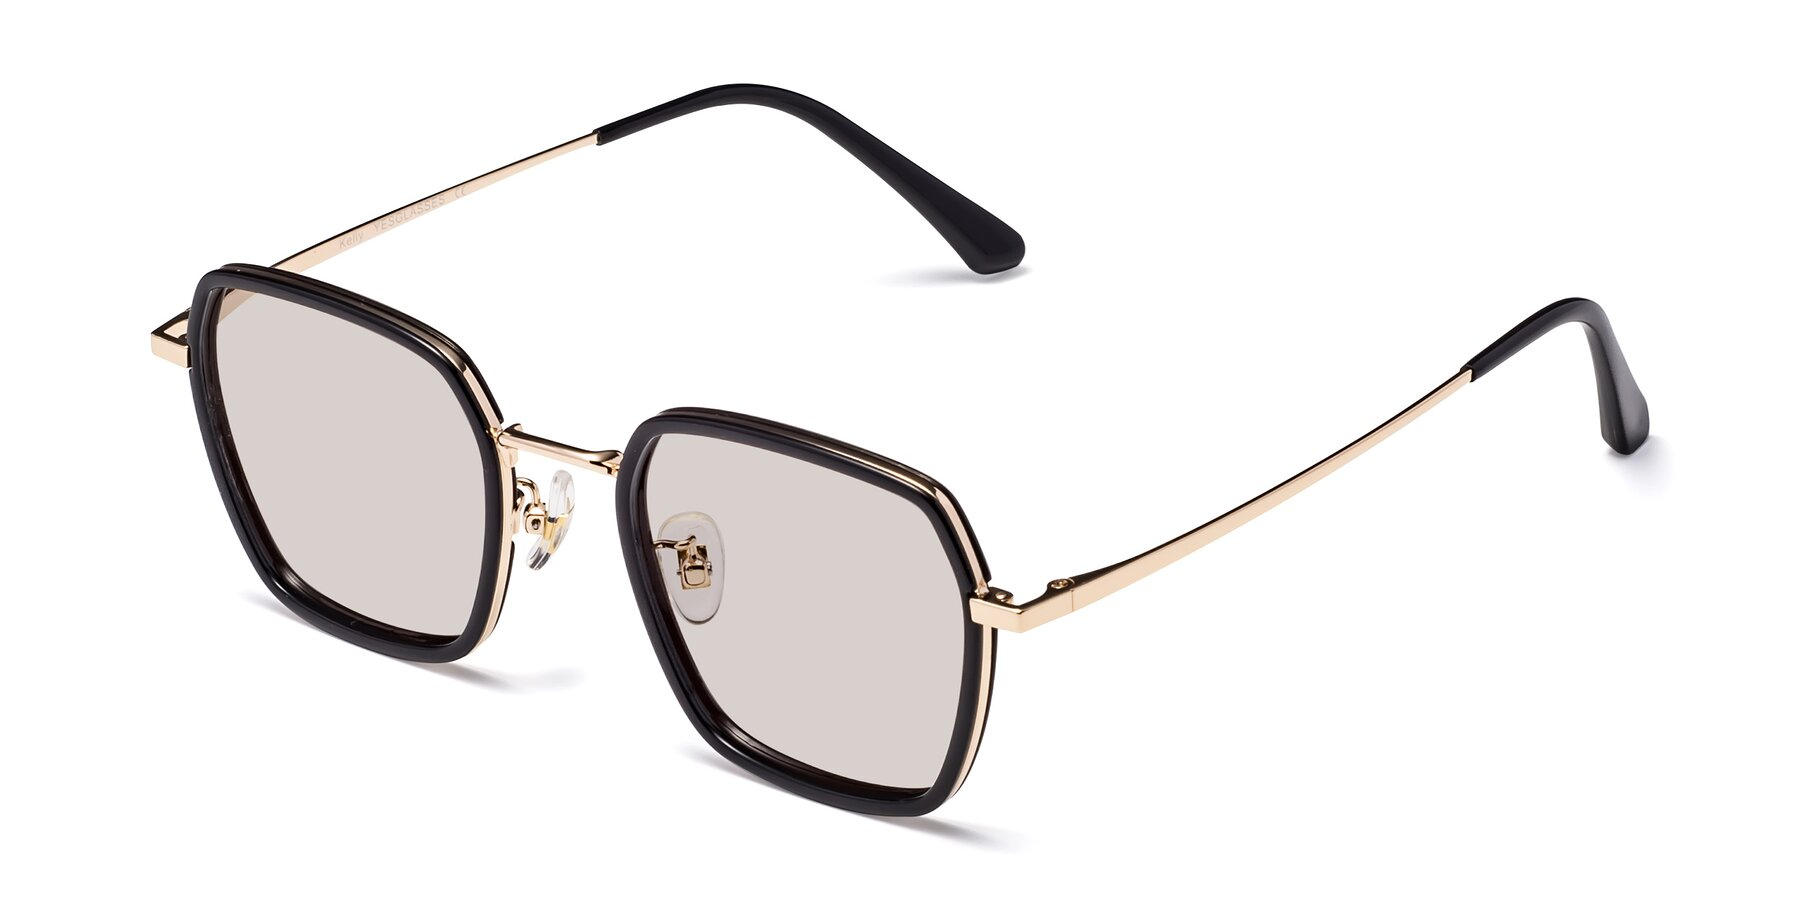 Angle of Kelly in Black-Gold with Light Brown Tinted Lenses